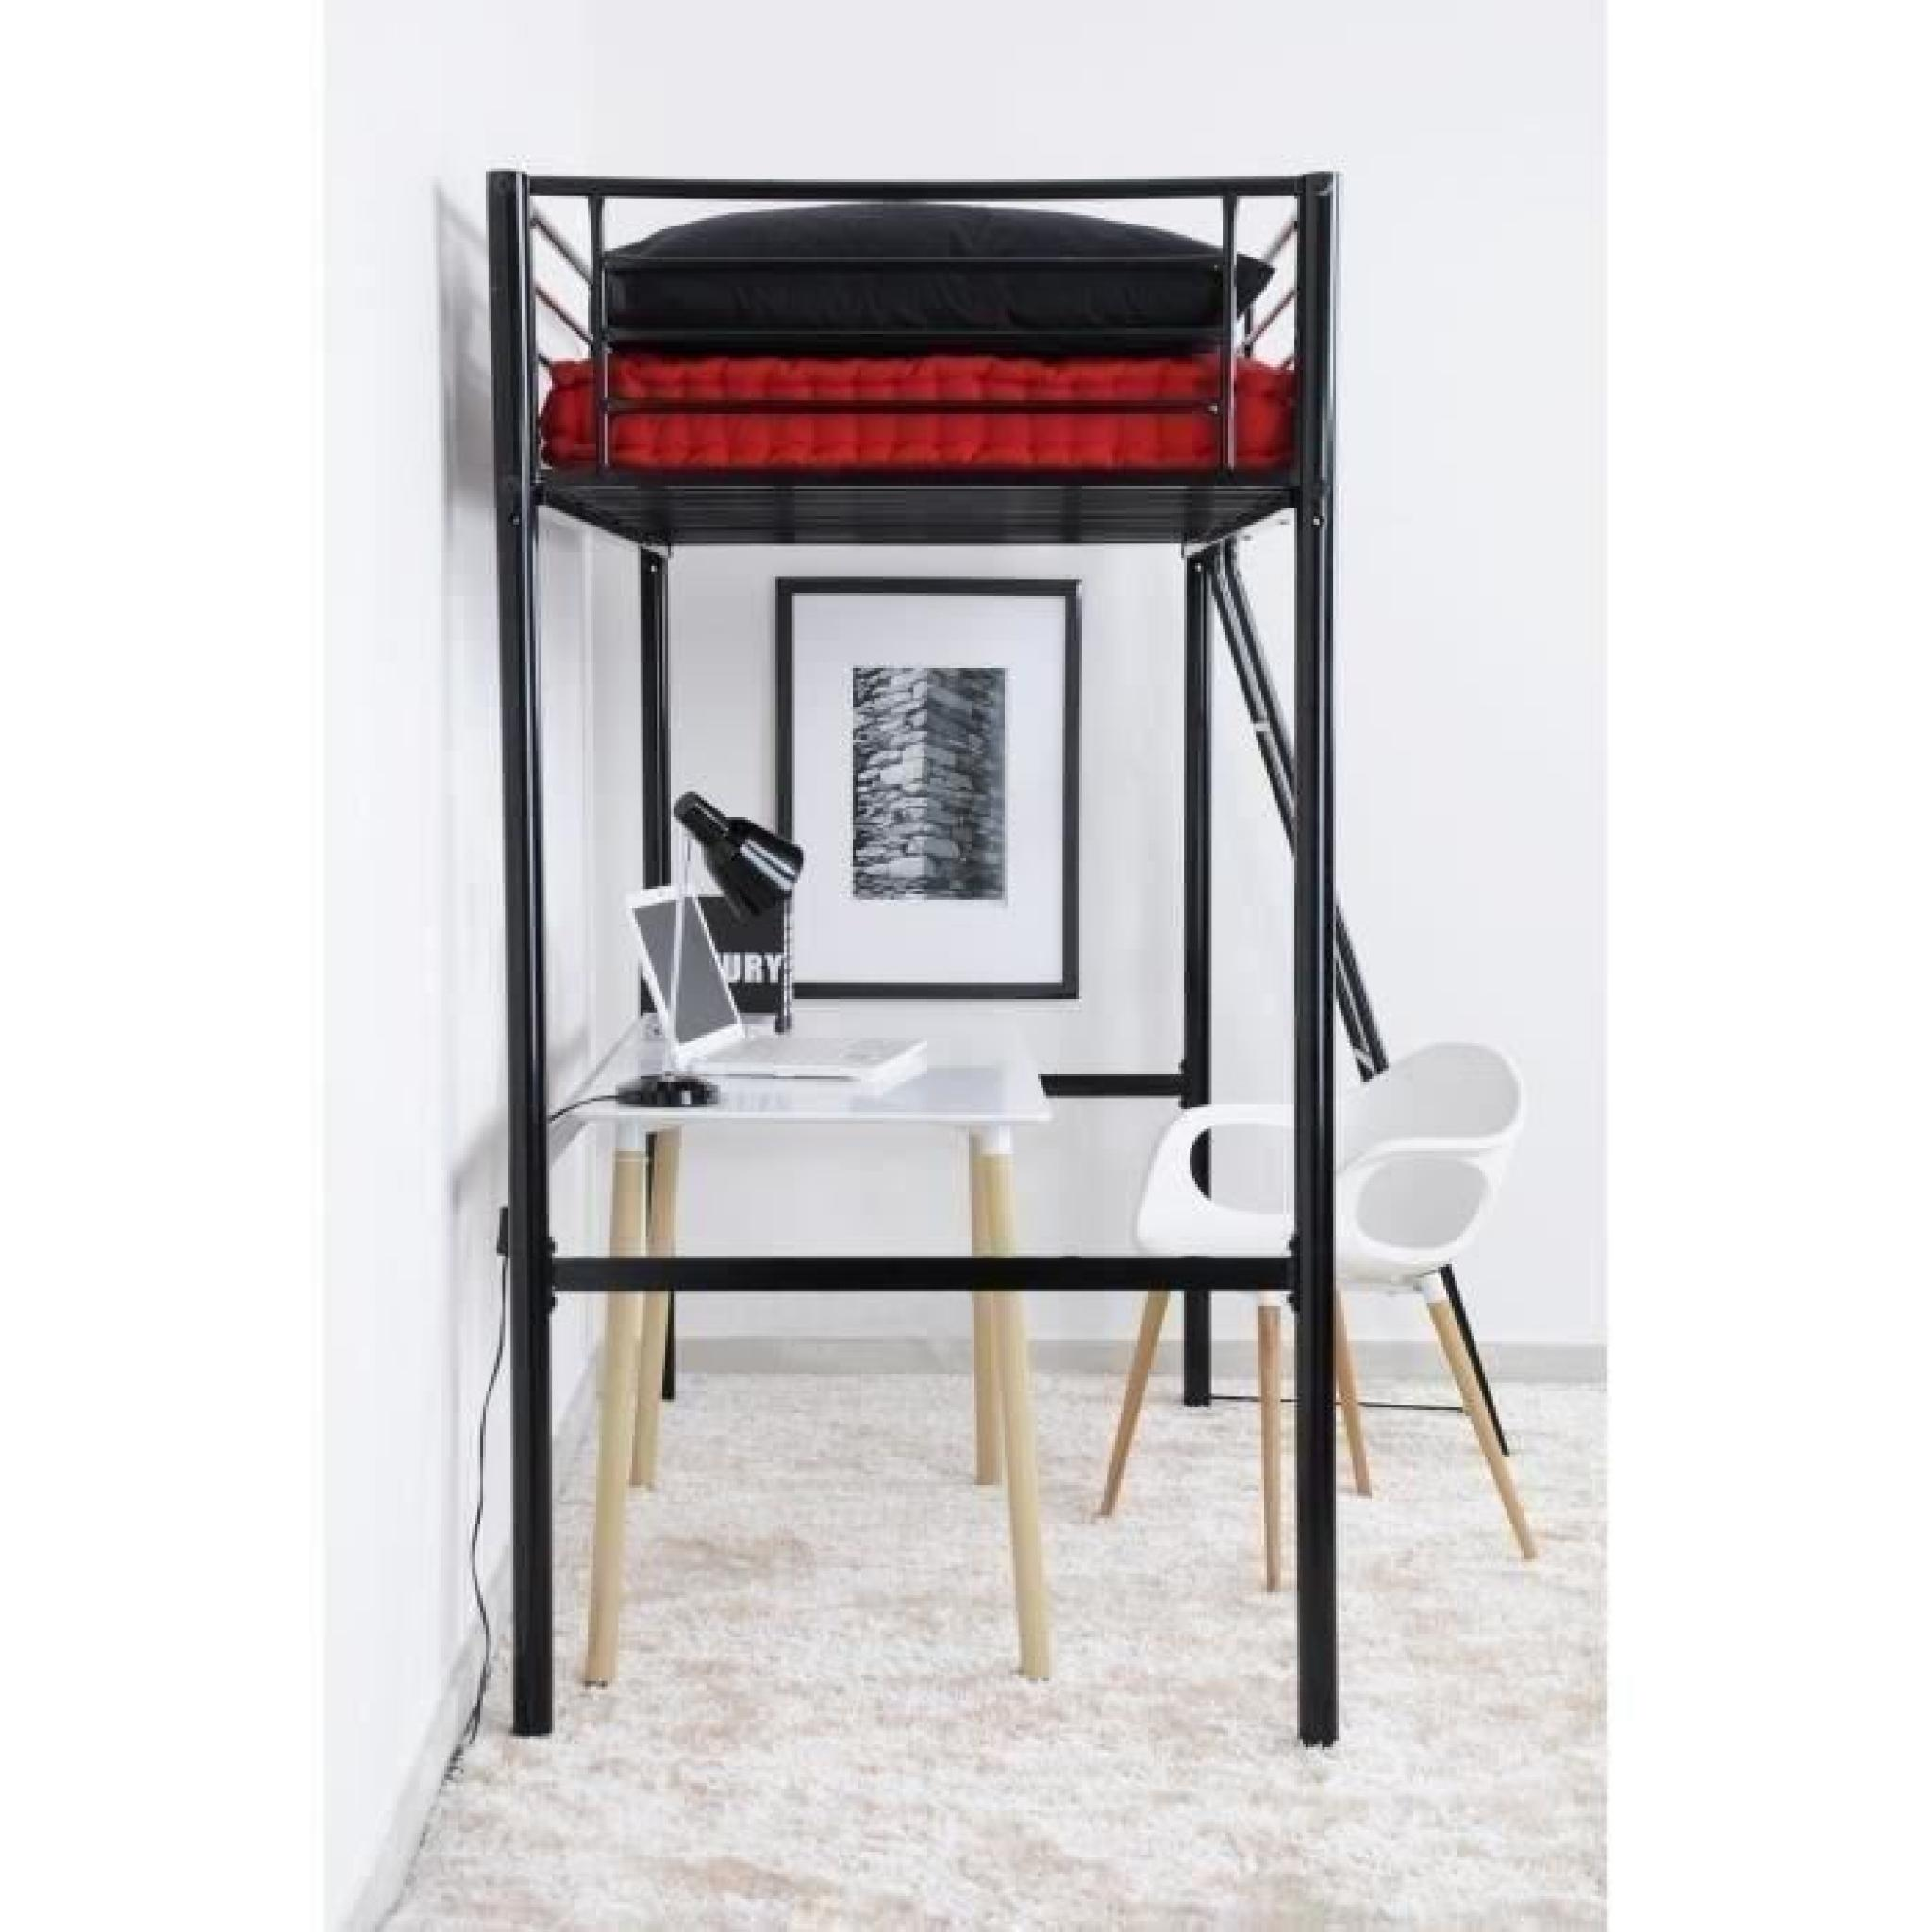 lit mezzanine adulte solide affordable lit mezzanine adulte et ides de rangement pour la. Black Bedroom Furniture Sets. Home Design Ideas